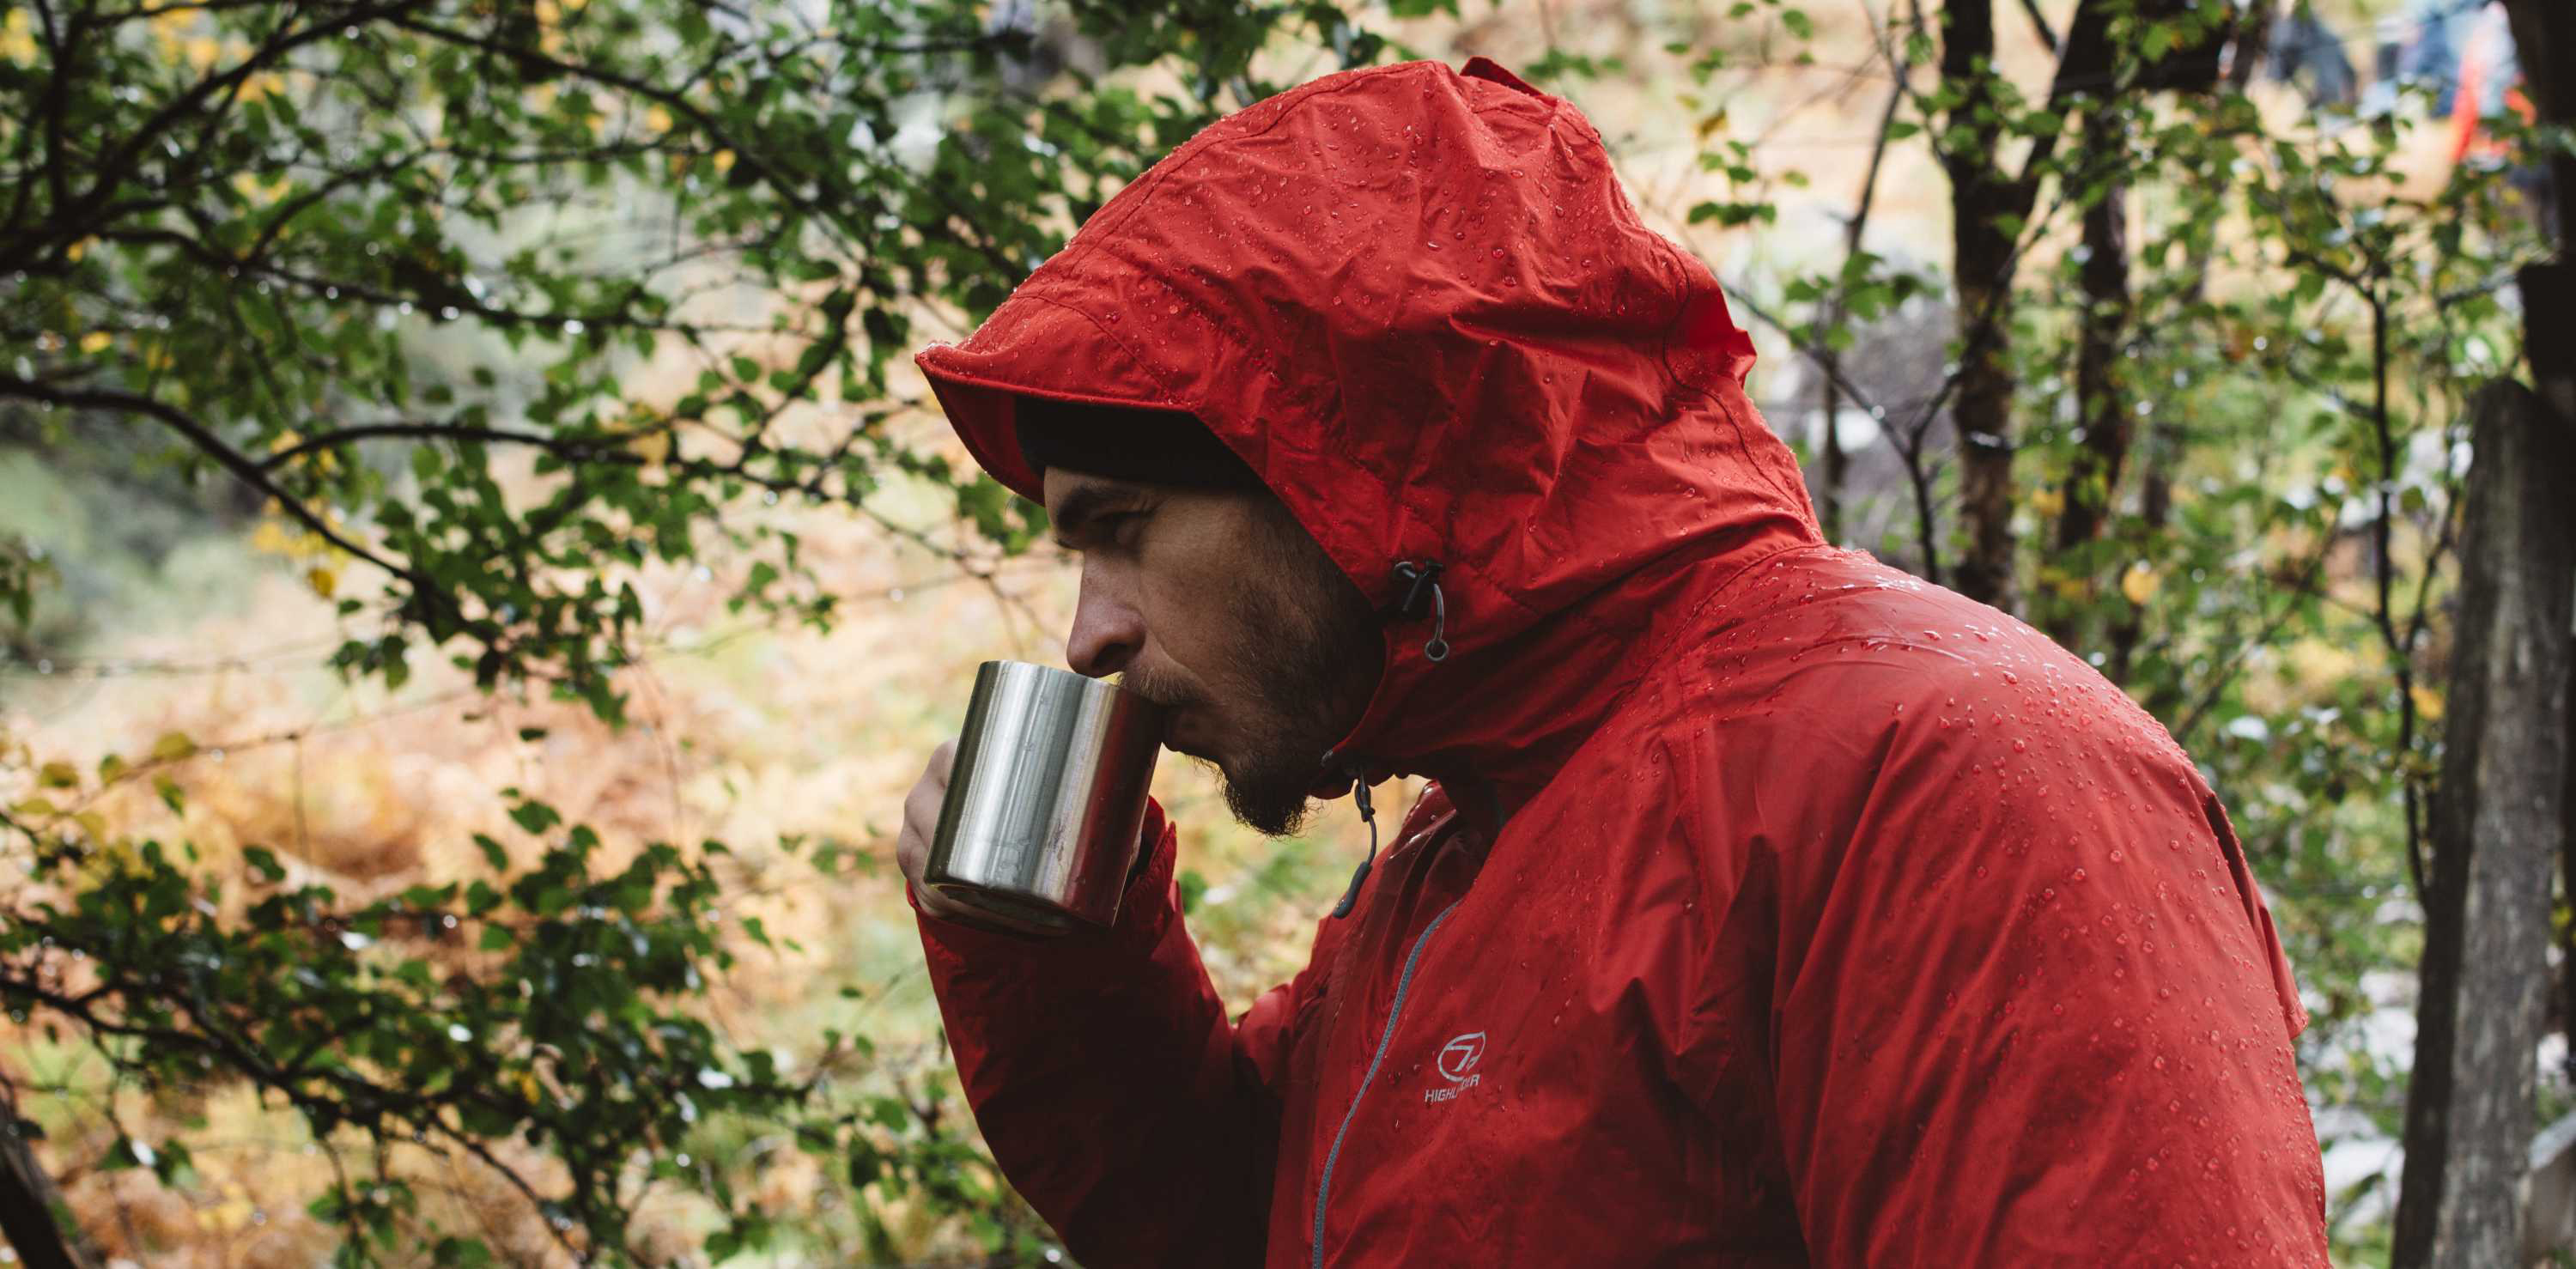 Best Food to Eat for a Day Hike